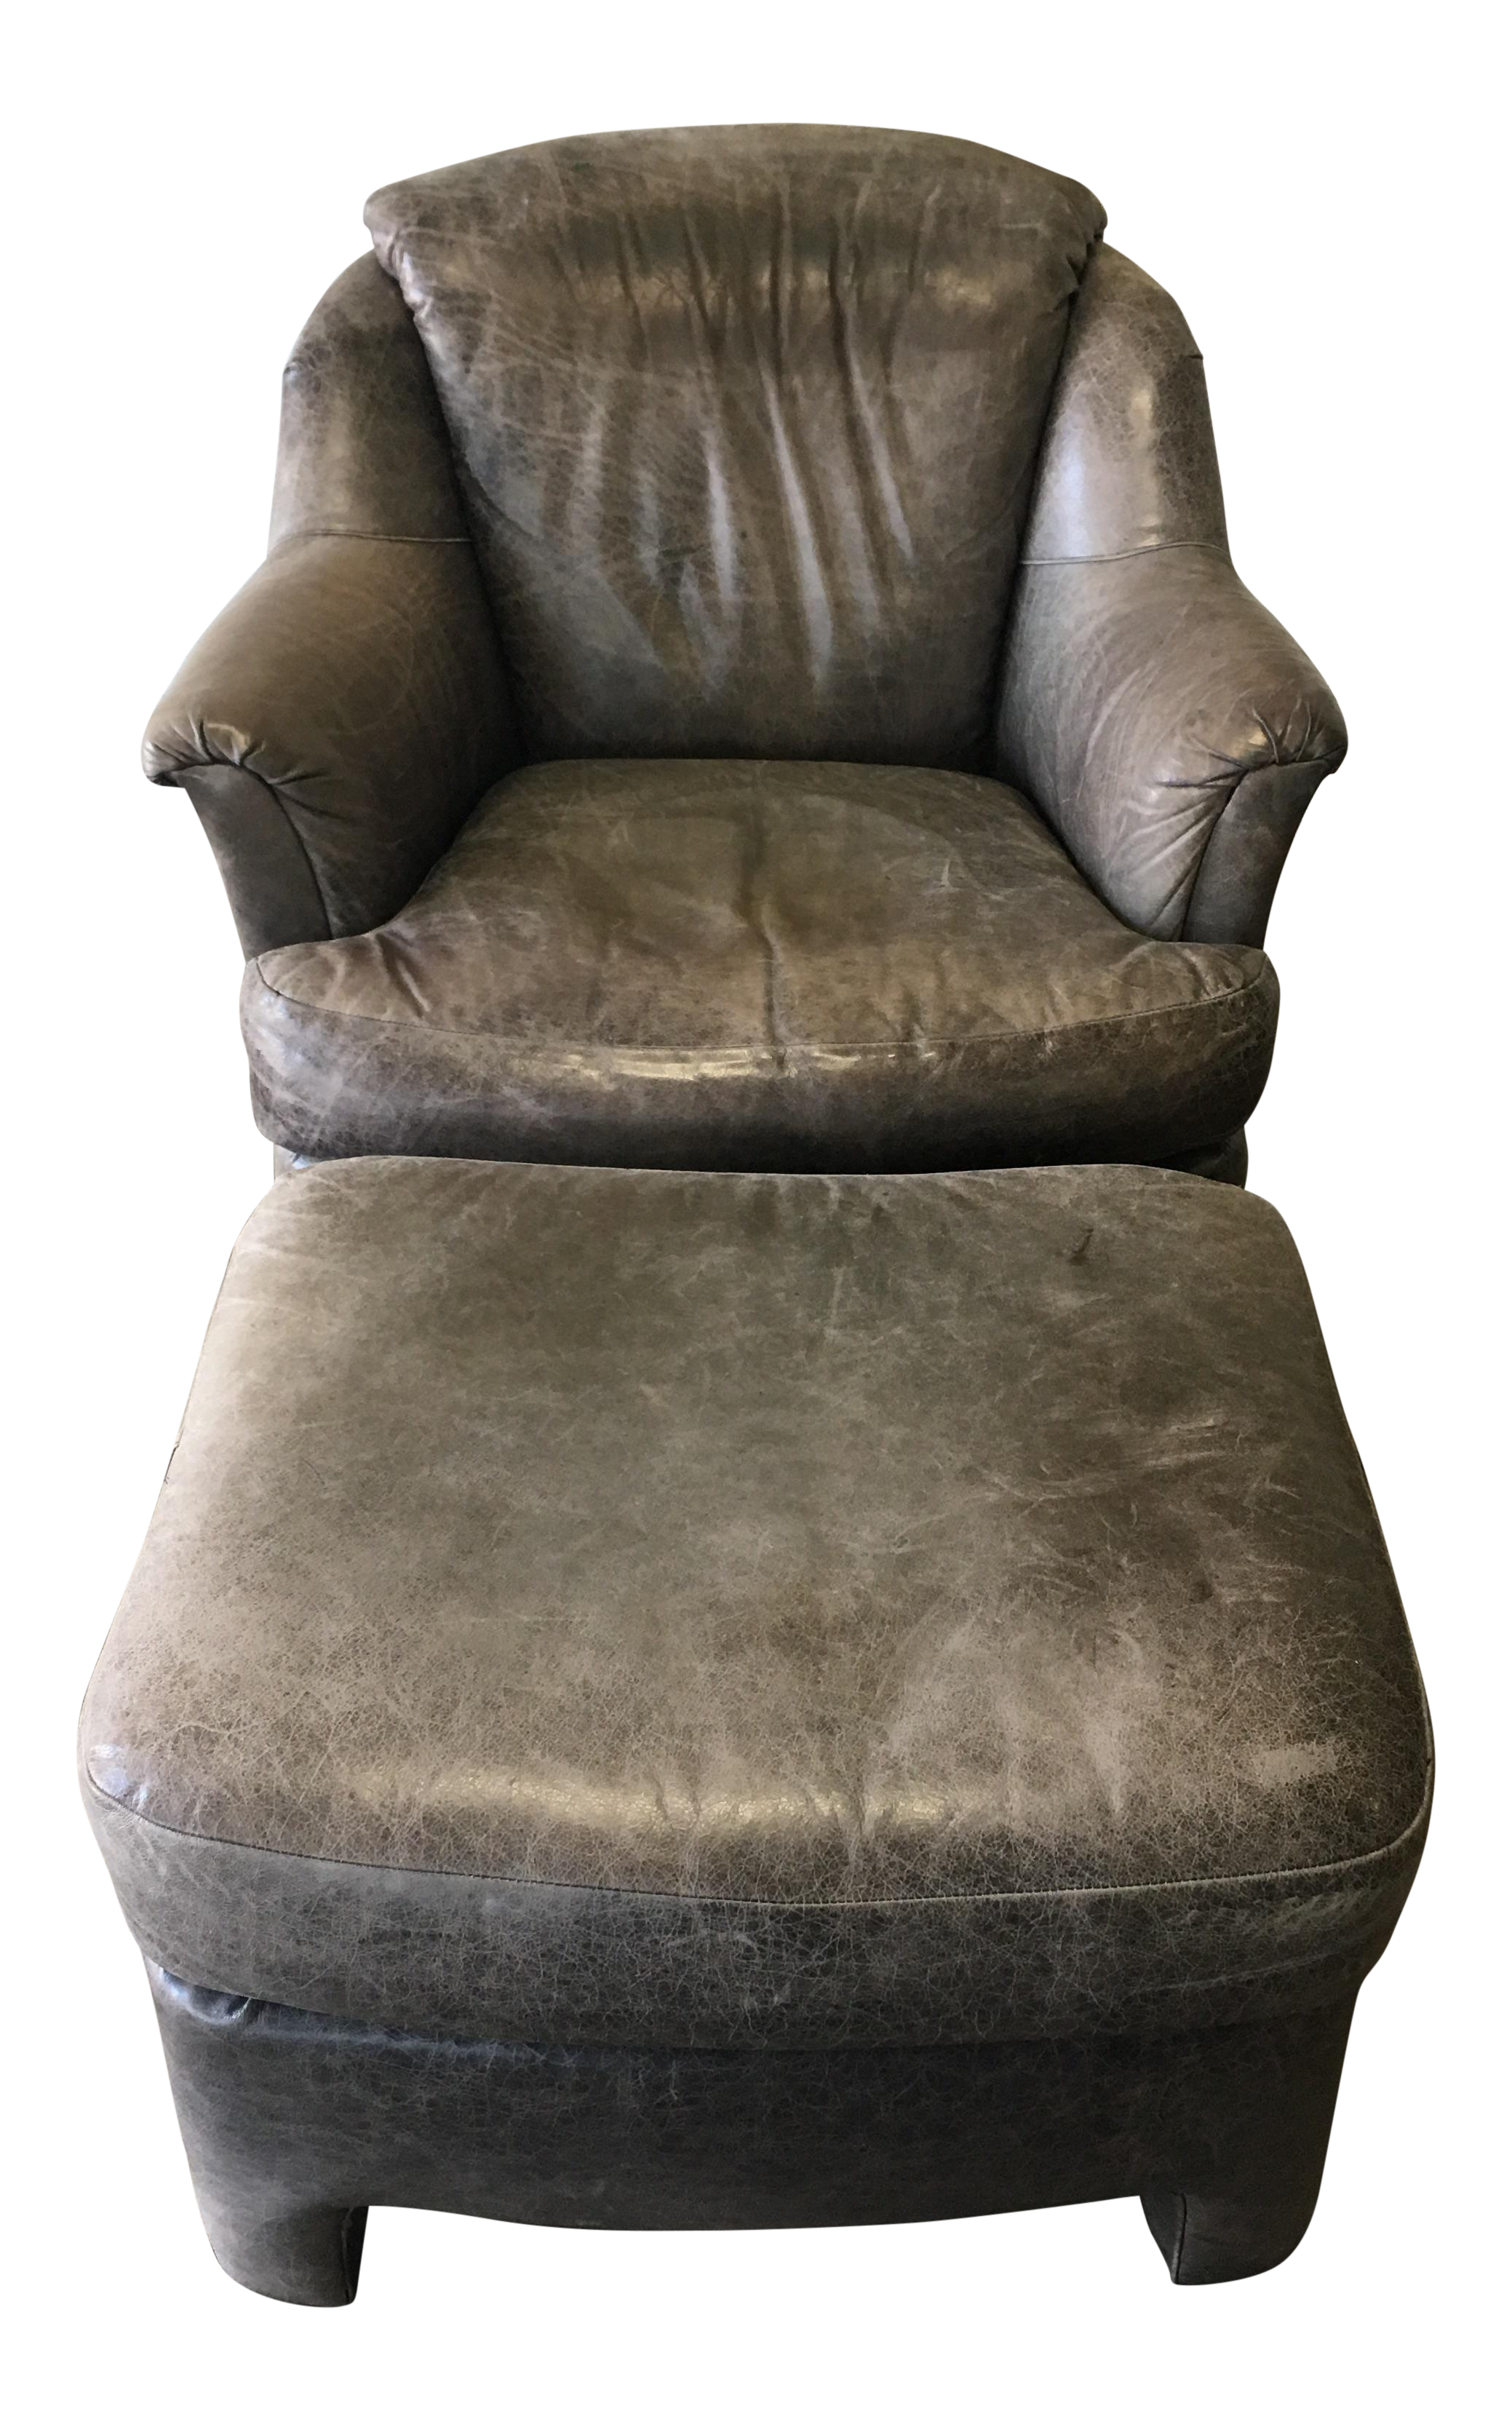 Pearson Distressed Leather Lounge Chair U0026 Ottoman   Image 1 ...